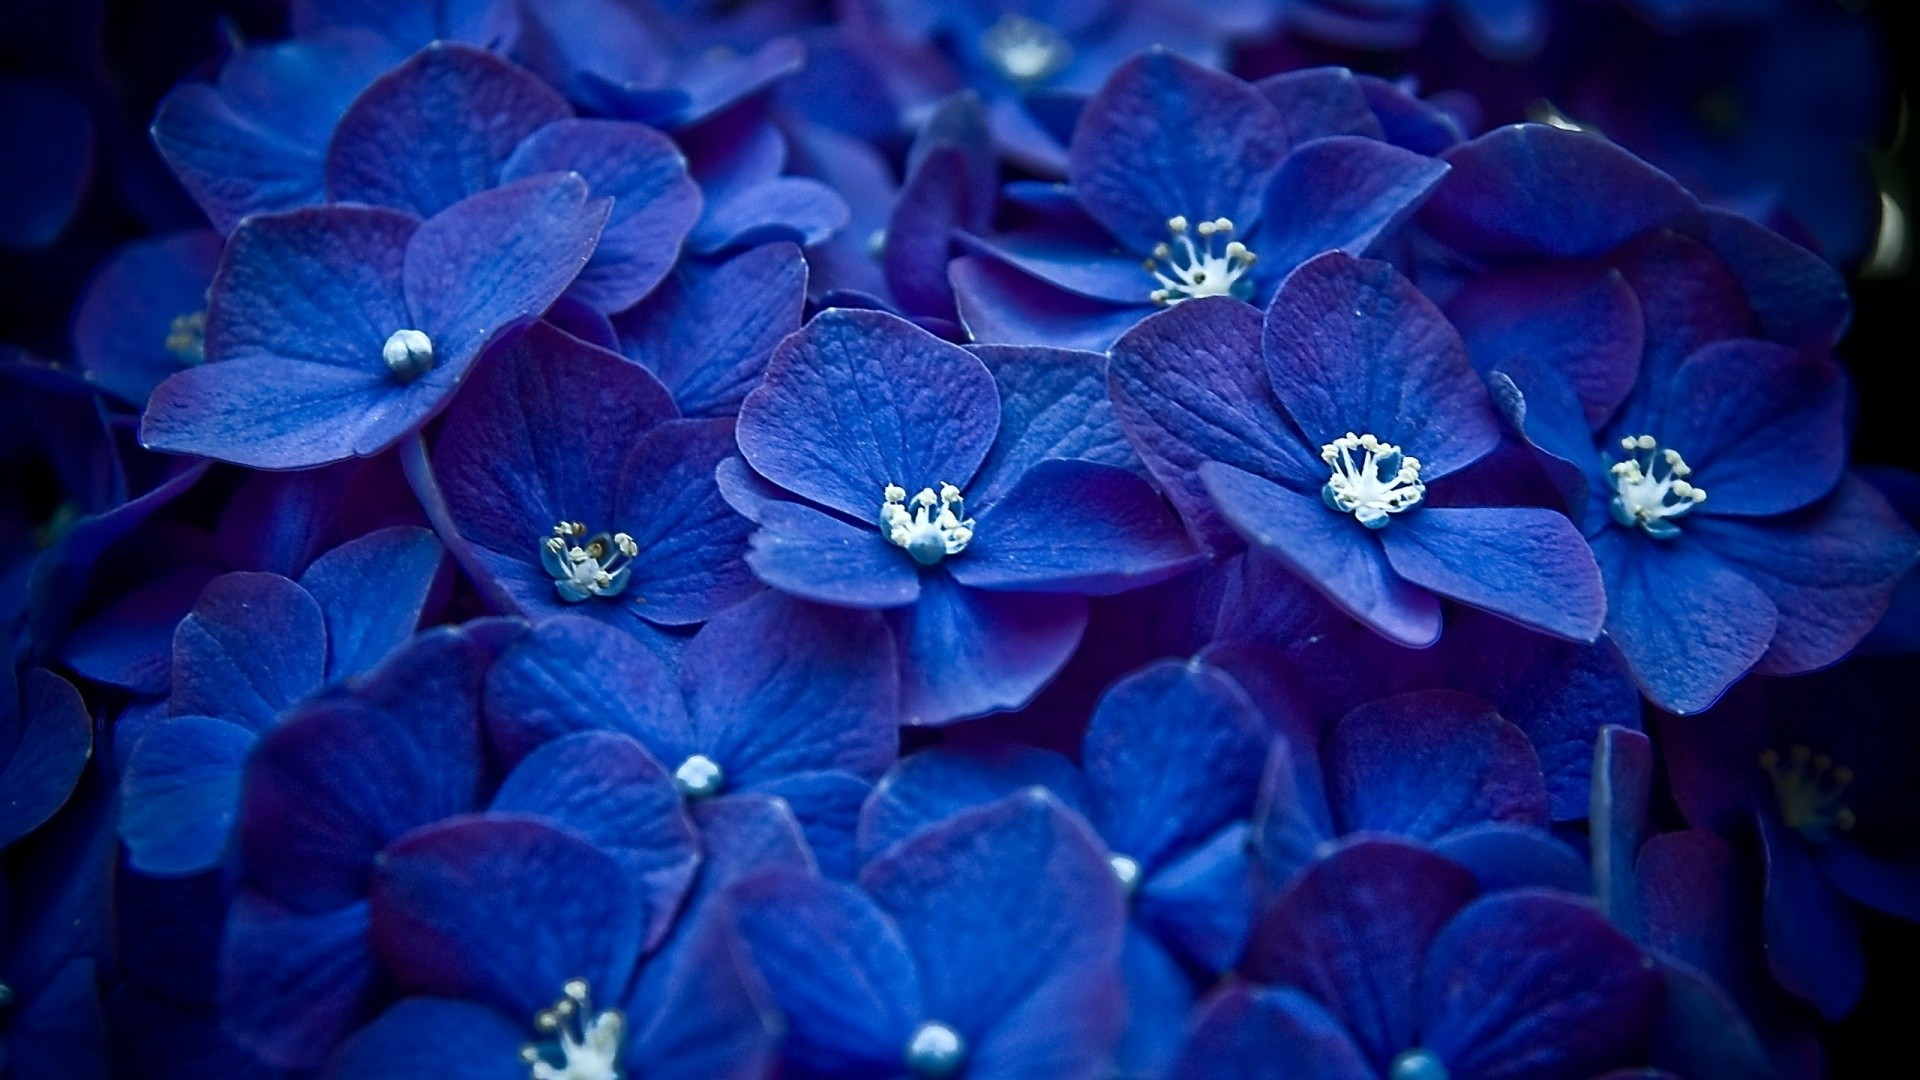 Res: 1920x1080, Blue Flower Wallpapers Phone